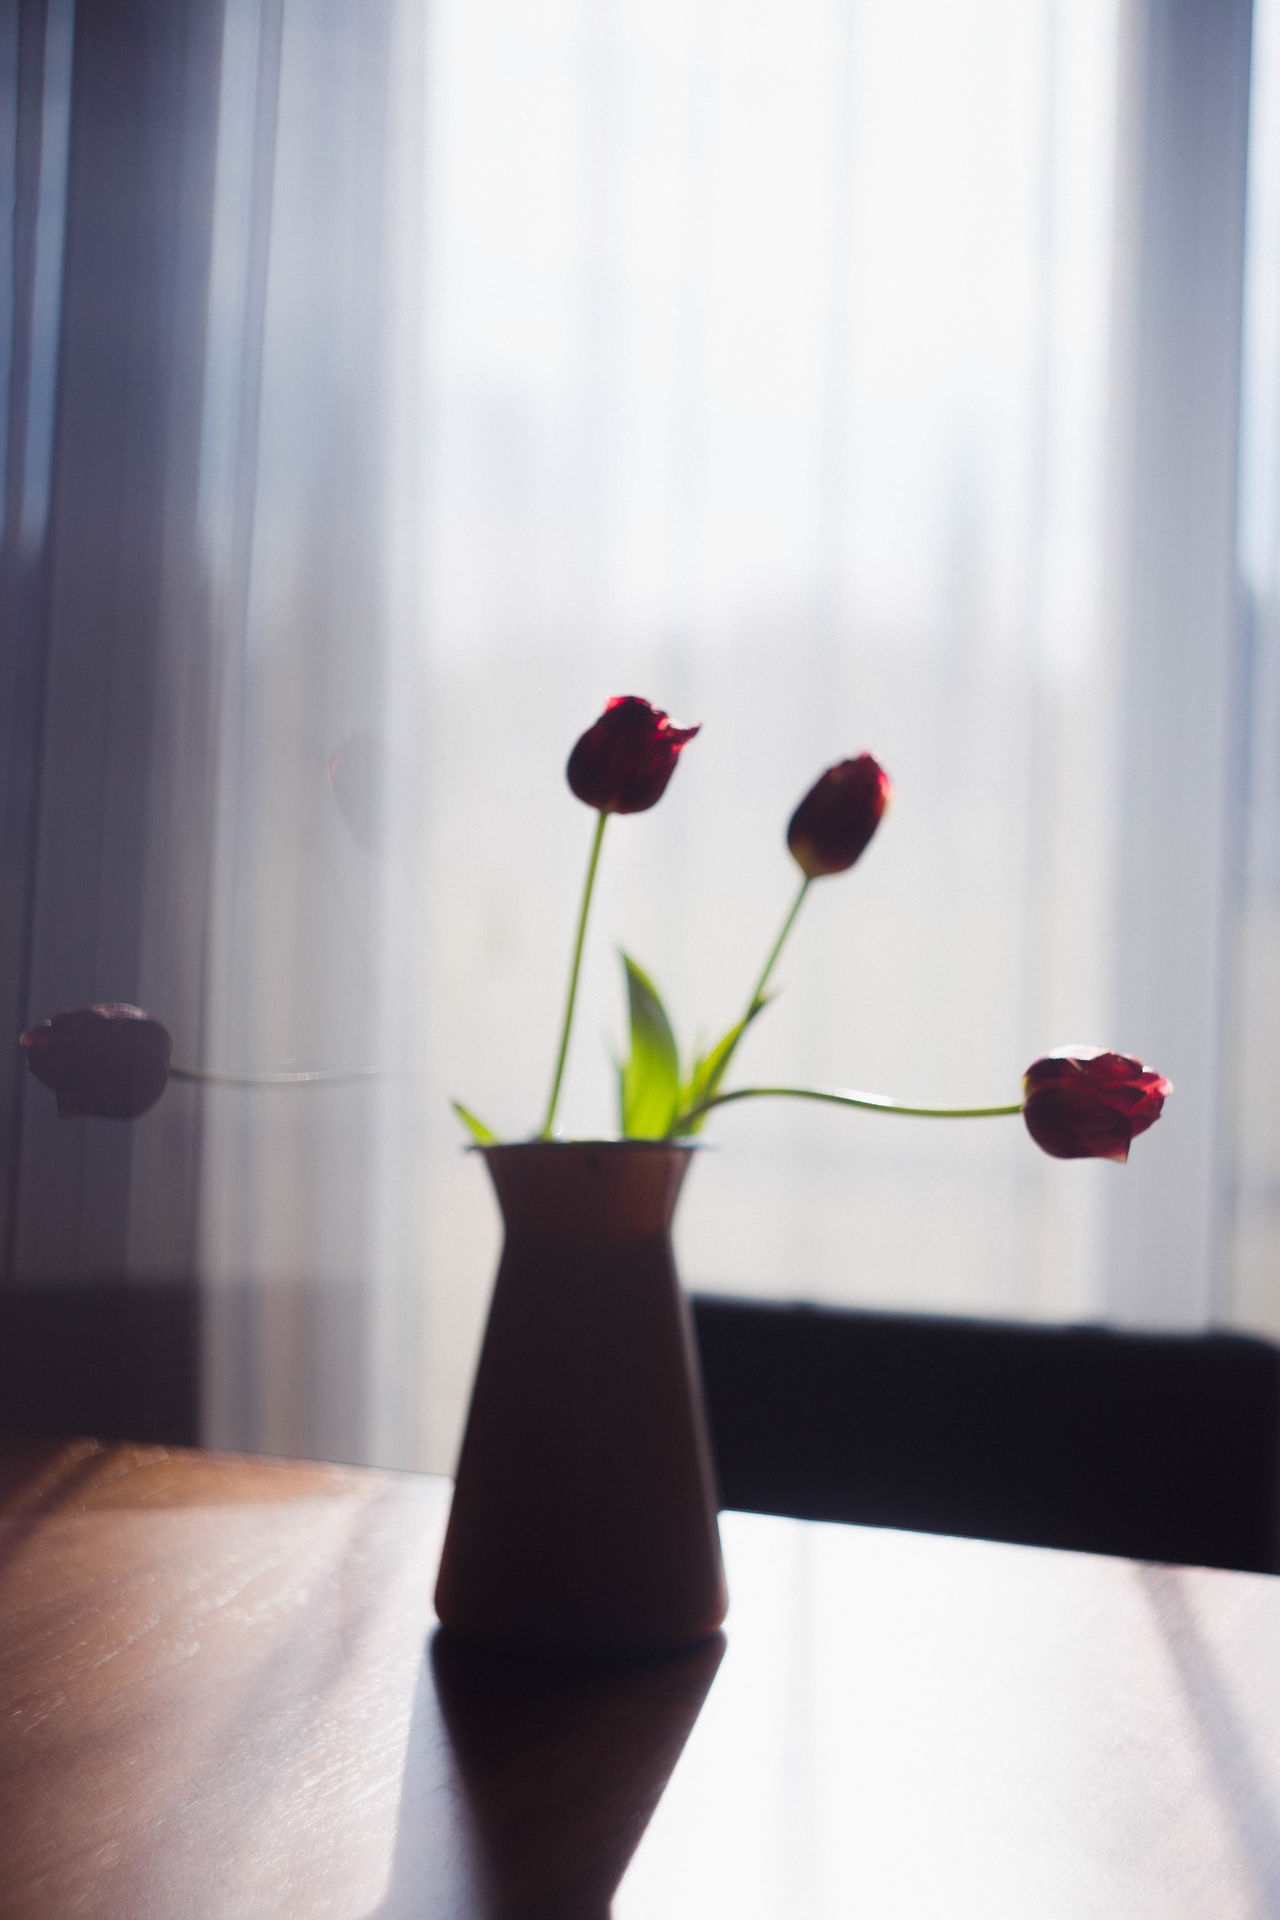 Beauty In Nature Blooming Bouquet Close-up Curtain Day Flower Flower Arrangement Flower Head Flowers Fragility Freshness Growth Home Interior Indoors  Nature No People Petal Plant Tulip Vase Window